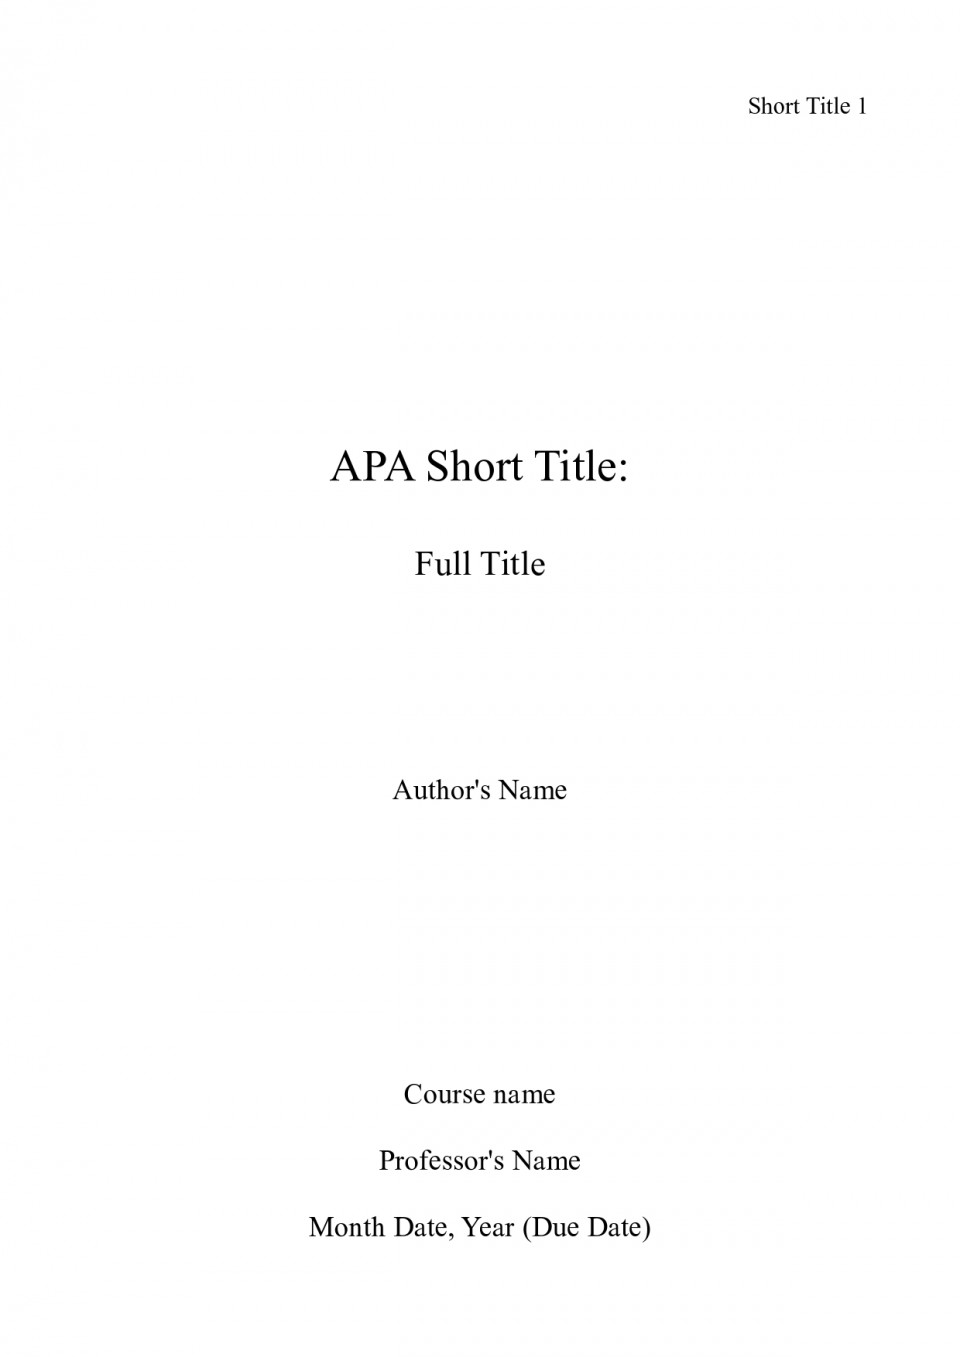 001 Essay Example How To Write Cover Page For An Apa Title Awesome A Contents Bibliography 960